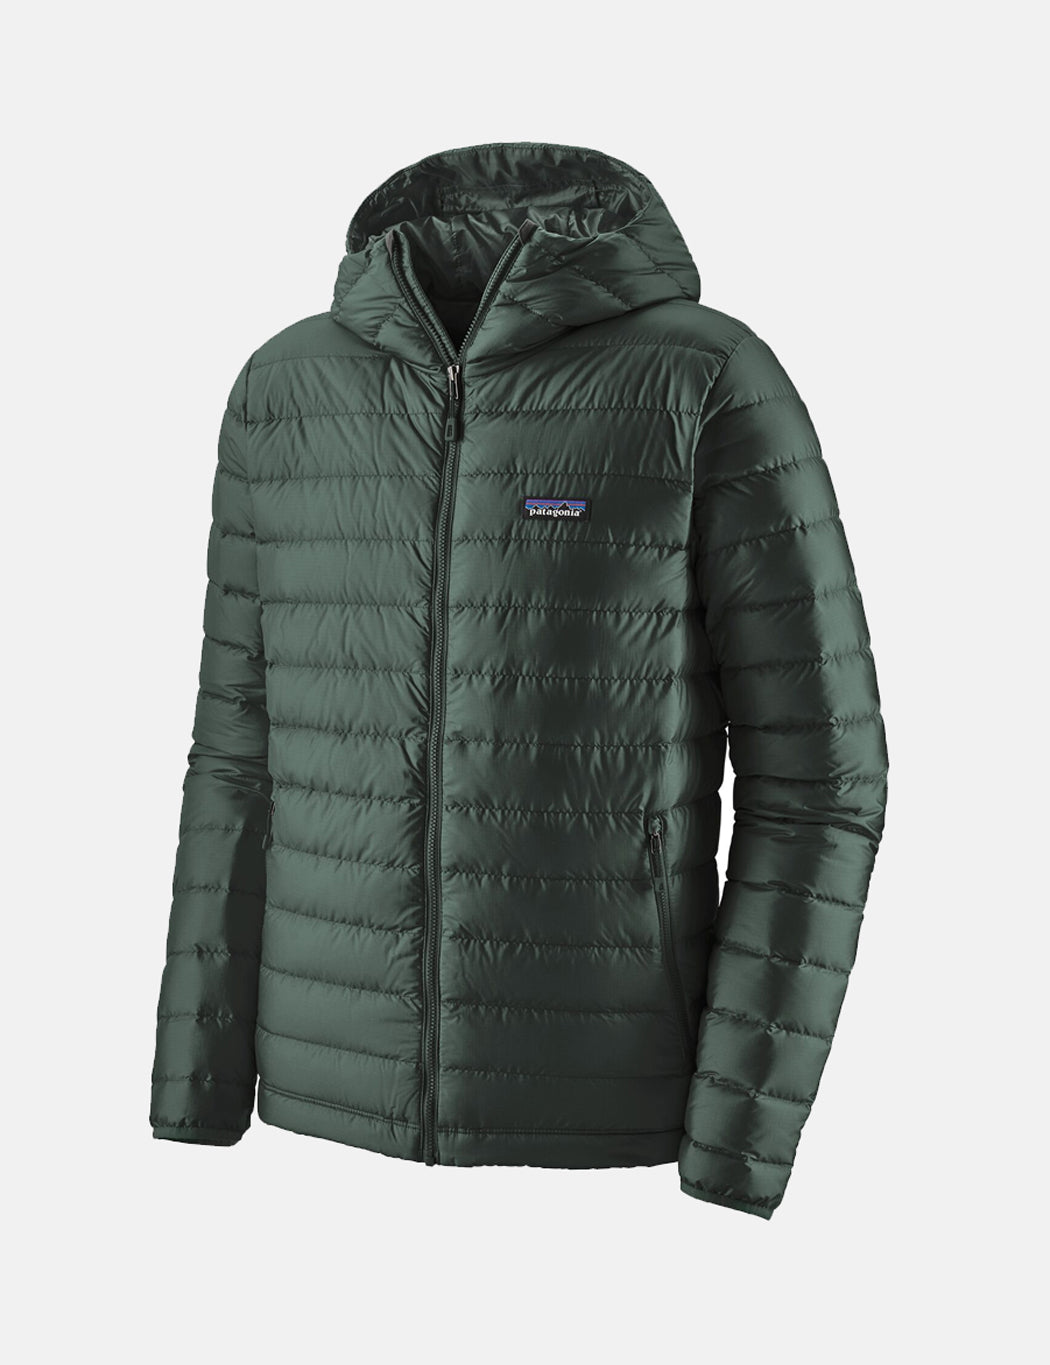 Patagonia Down Sweater Hooded Jacket - Carbon Green